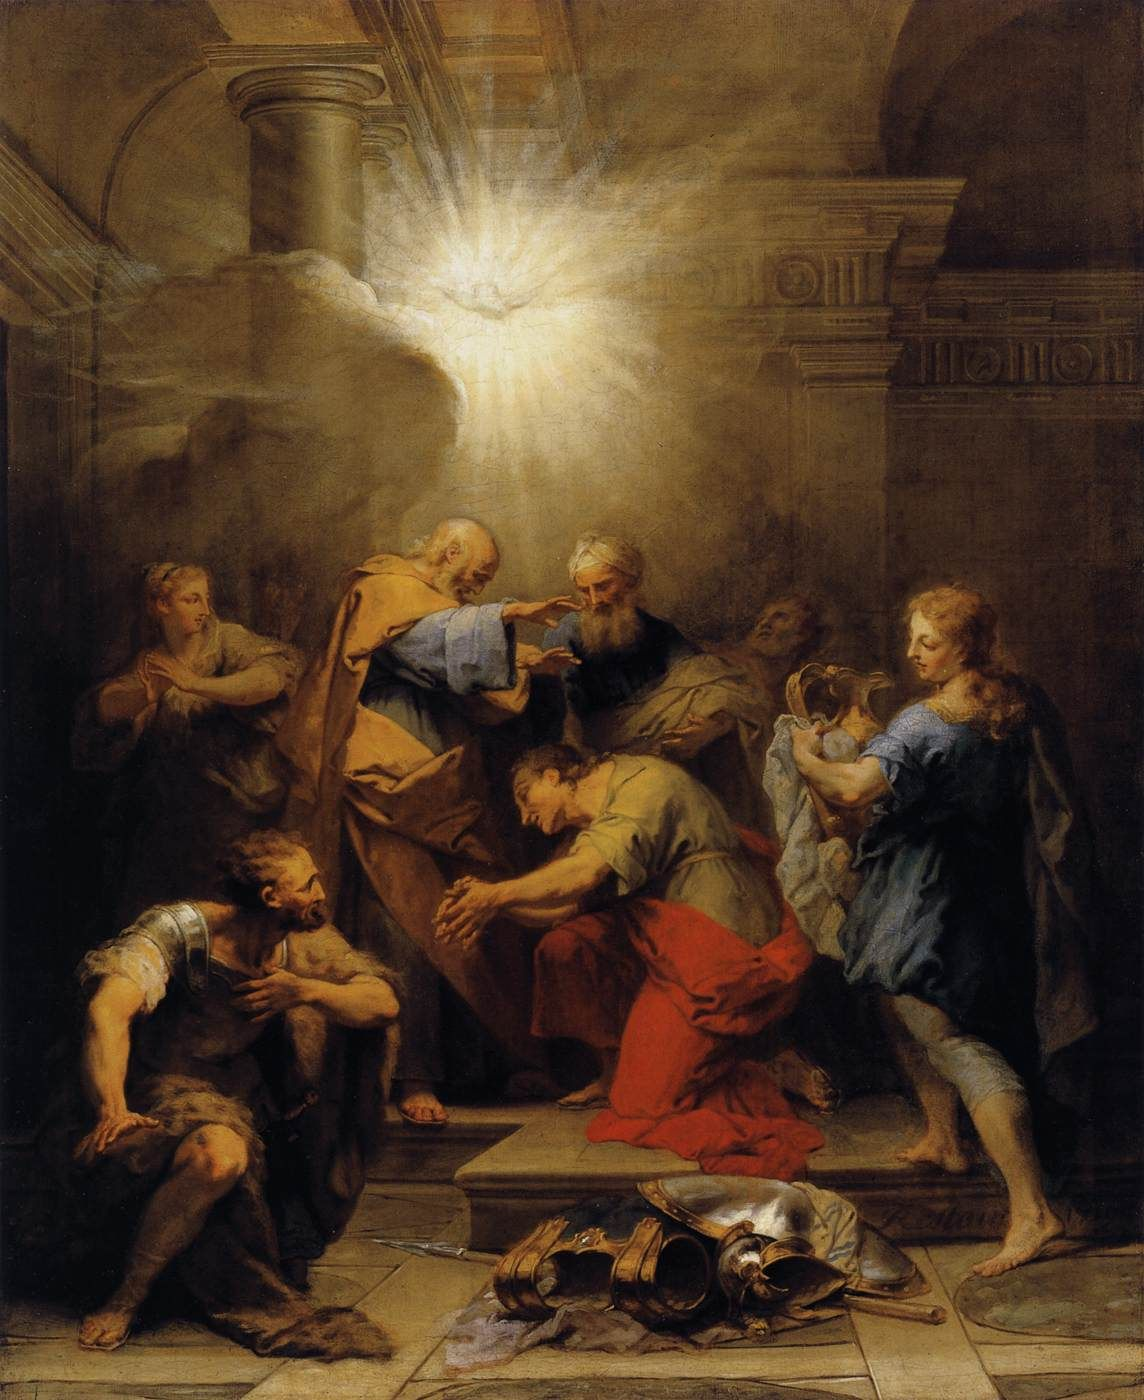 """Jesus later spoke to Ananias in a vision, and told him to go to the """"street which is called Straight"""", and ask """"in the house of Judas for one called Saul, of Tarsus"""". (Acts9:11)"""